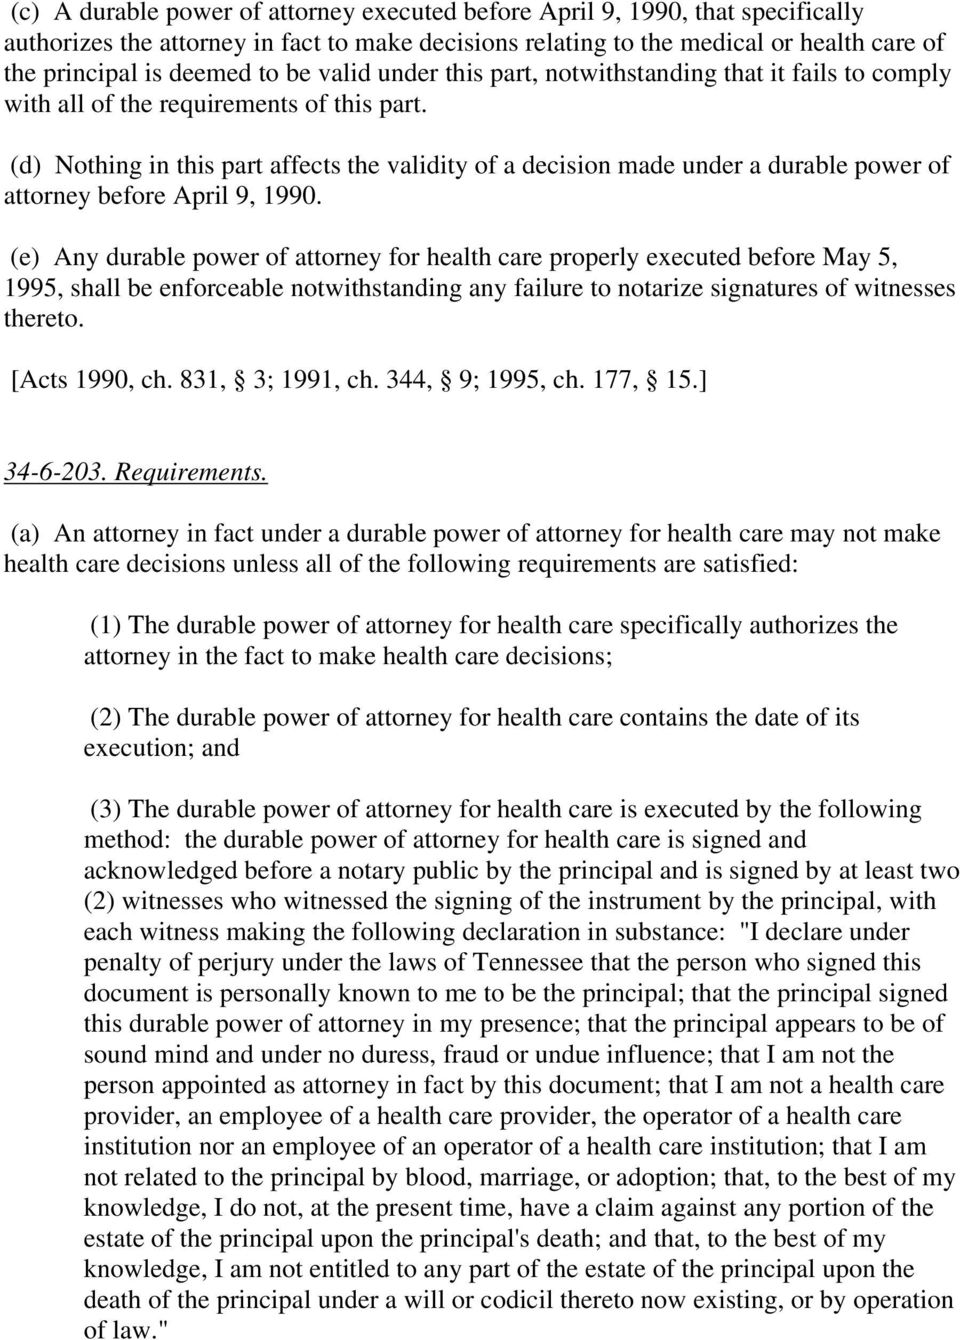 (d) Nothing in this part affects the validity of a decision made under a durable power of attorney before April 9, 1990.